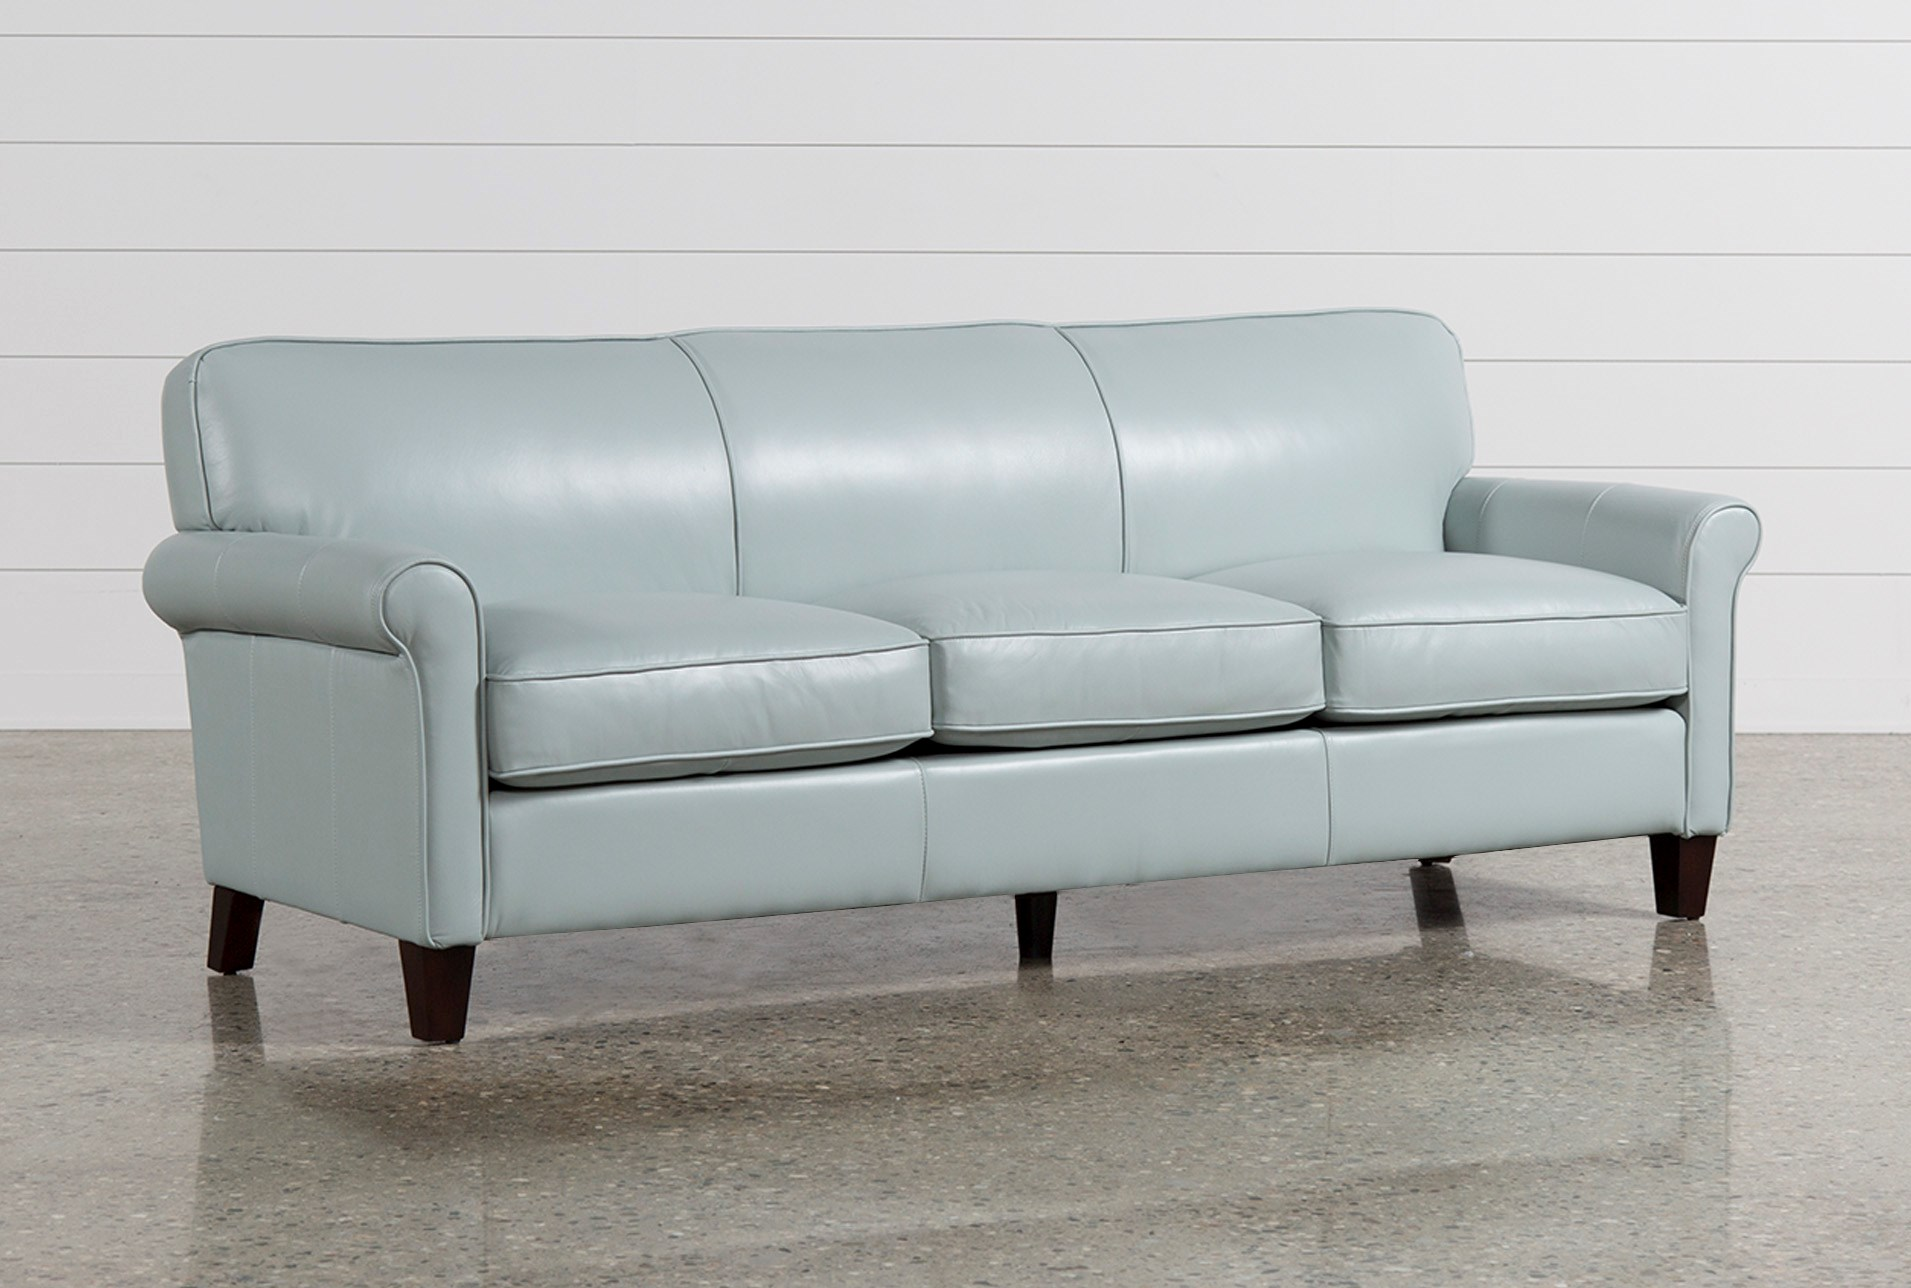 Phoebe Blue Leather Sofa Qty 1 Has Been Successfully Added To Your Cart